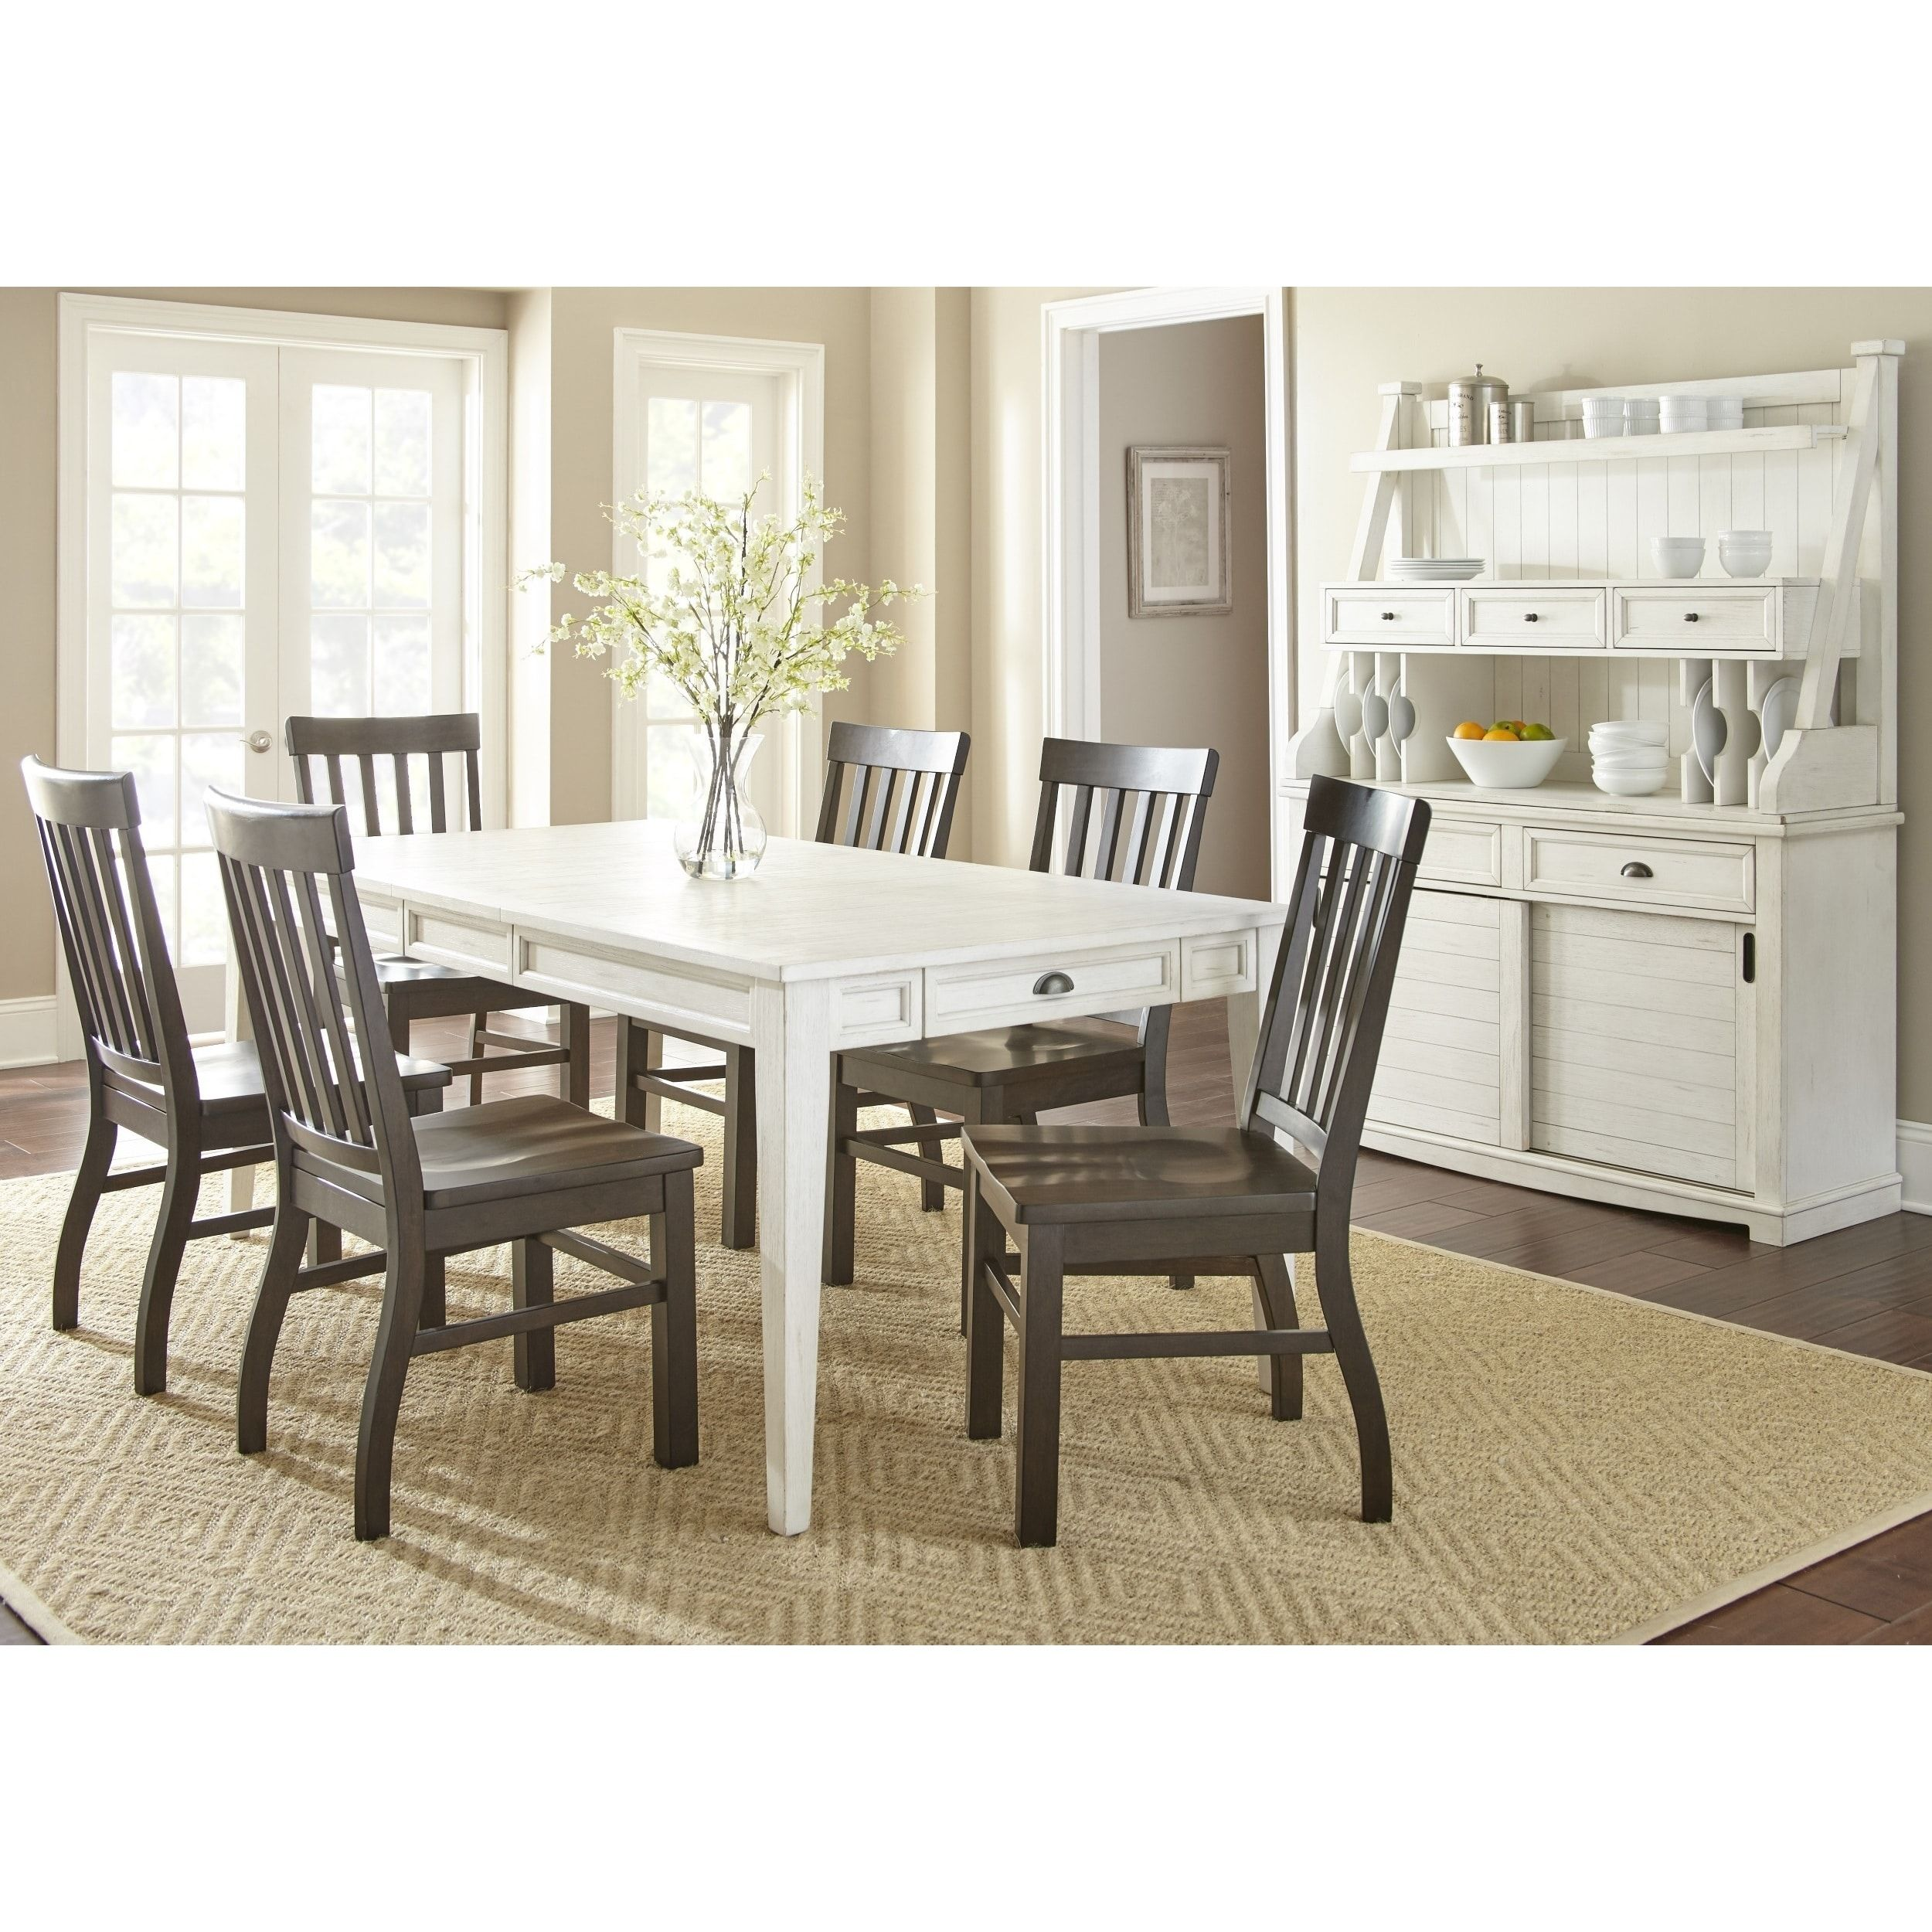 Cottonville Antique White Farmhouse Dining Set With Chairs By Greyson  Living (Cottonville 7PC Set With